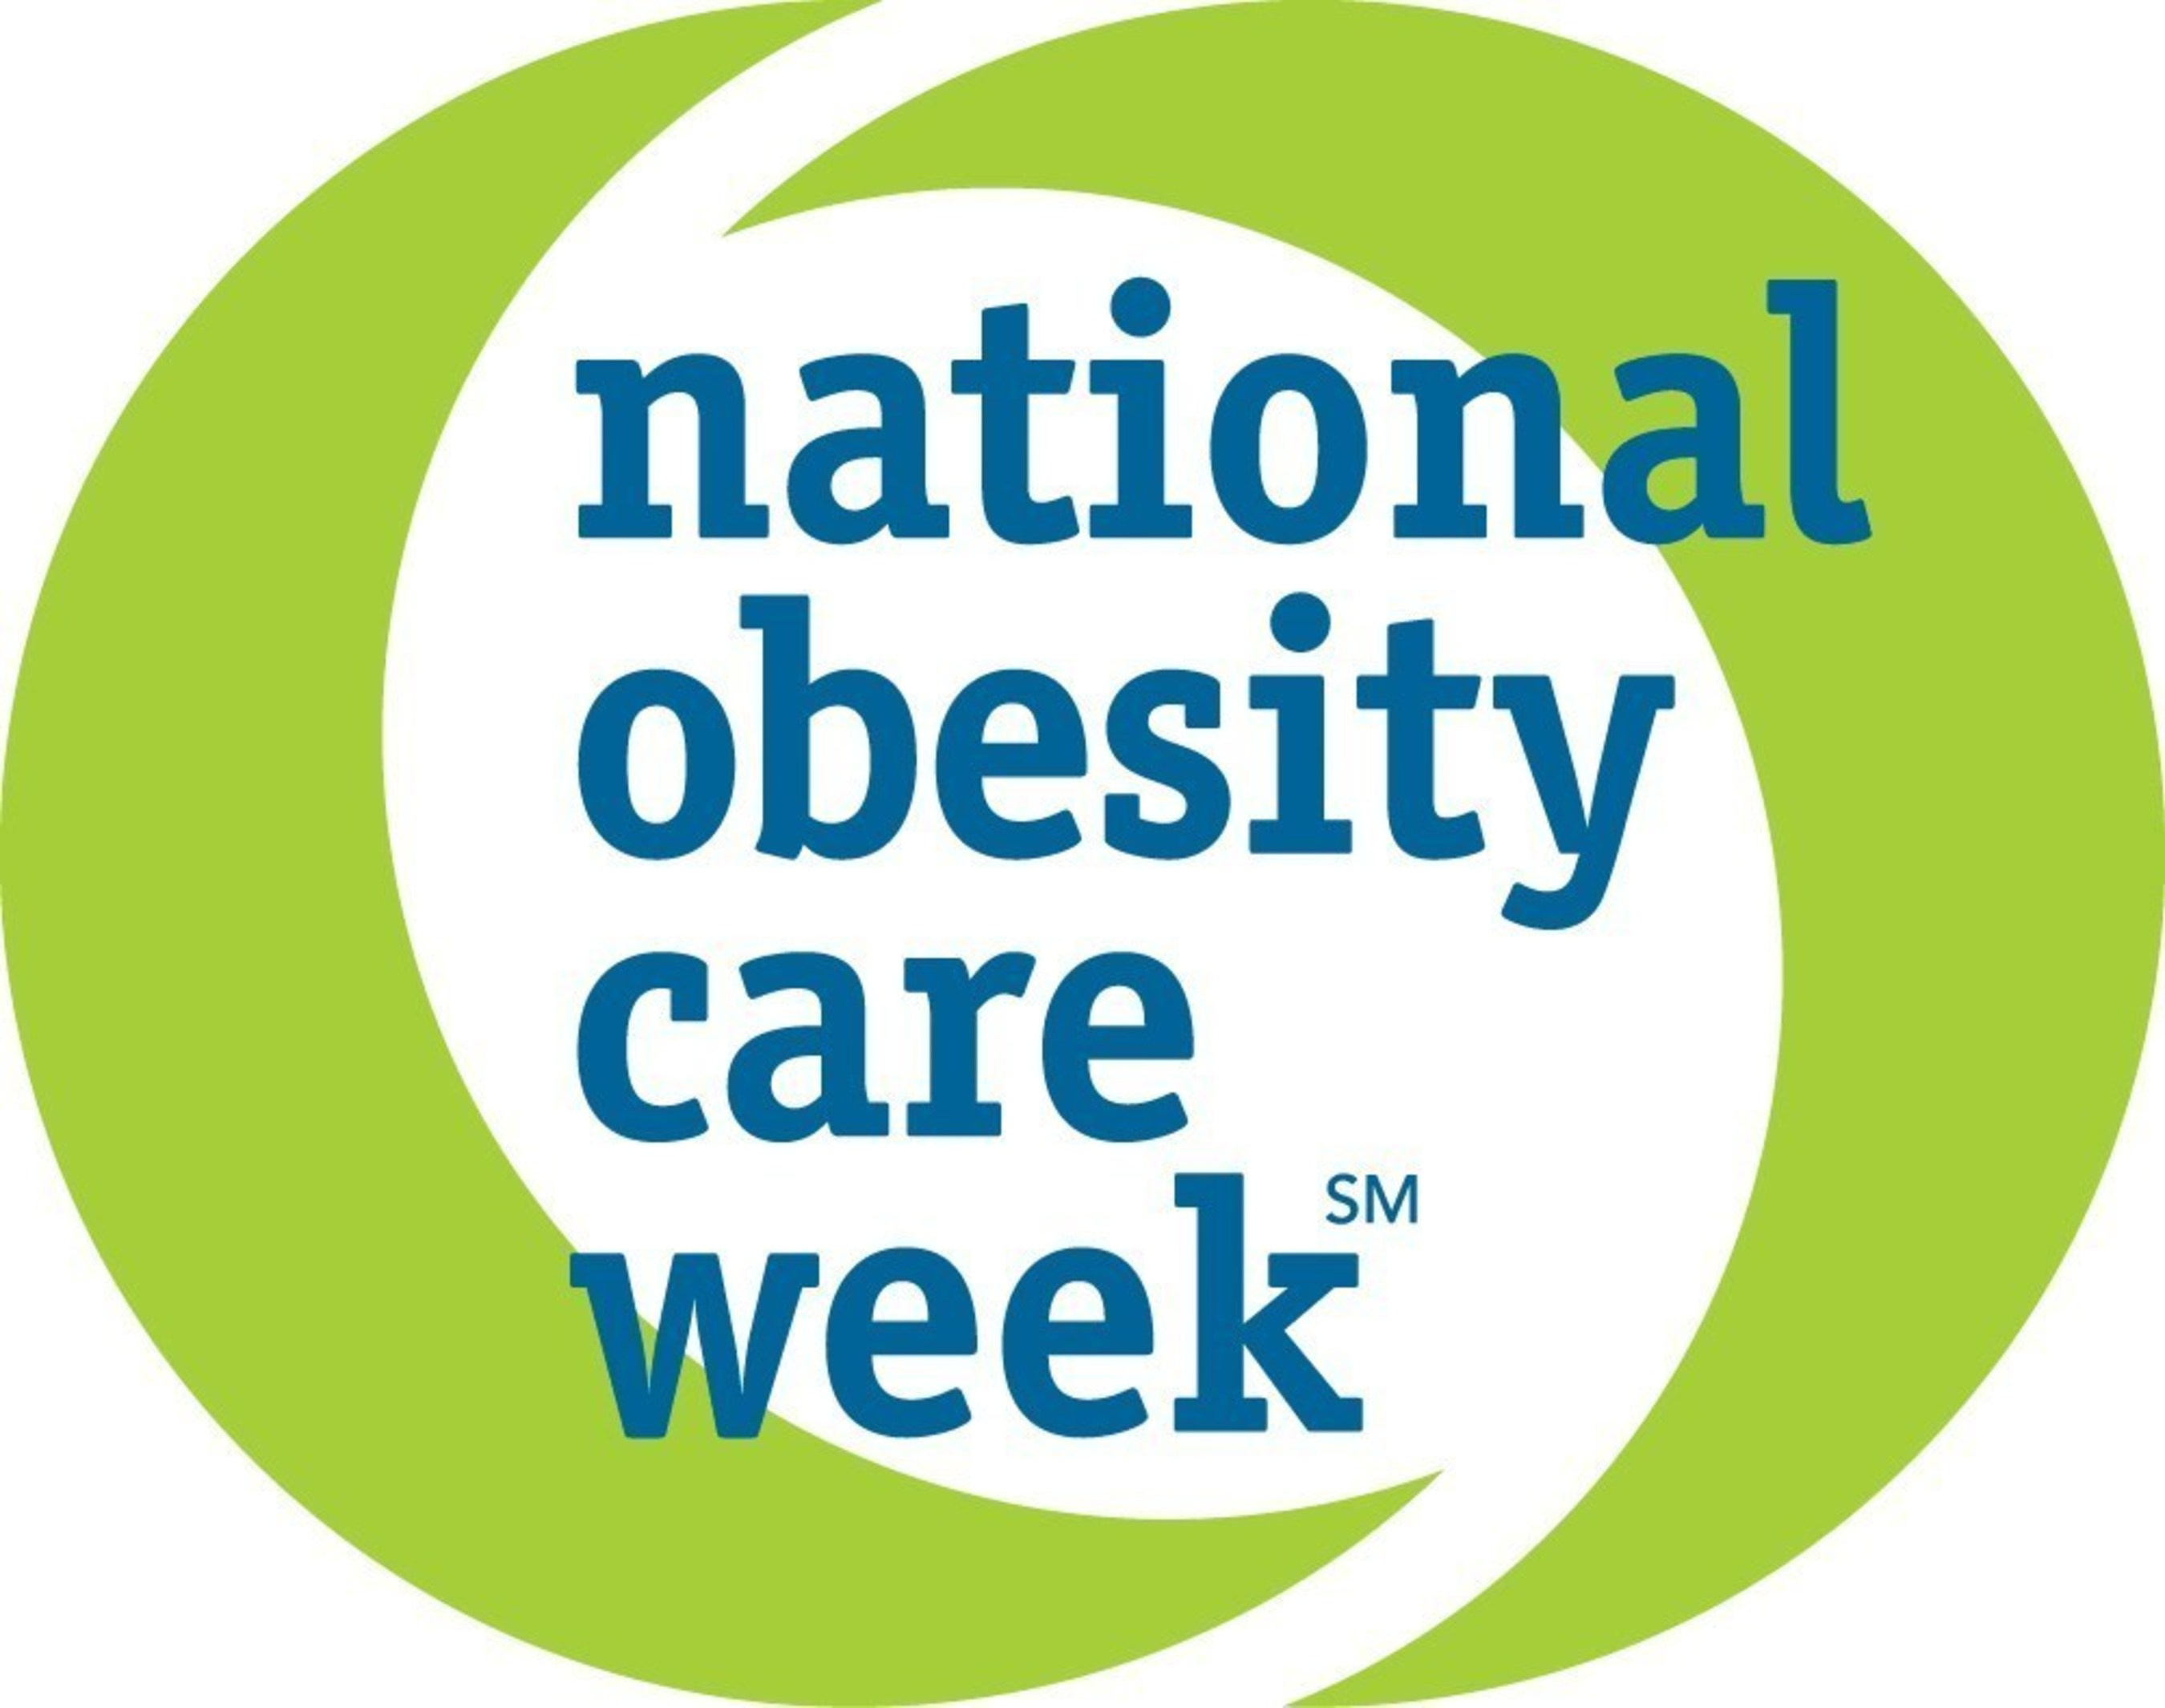 More Than 35 Leading U S Health Organizations Launch Campaign To Improve Obesity Care